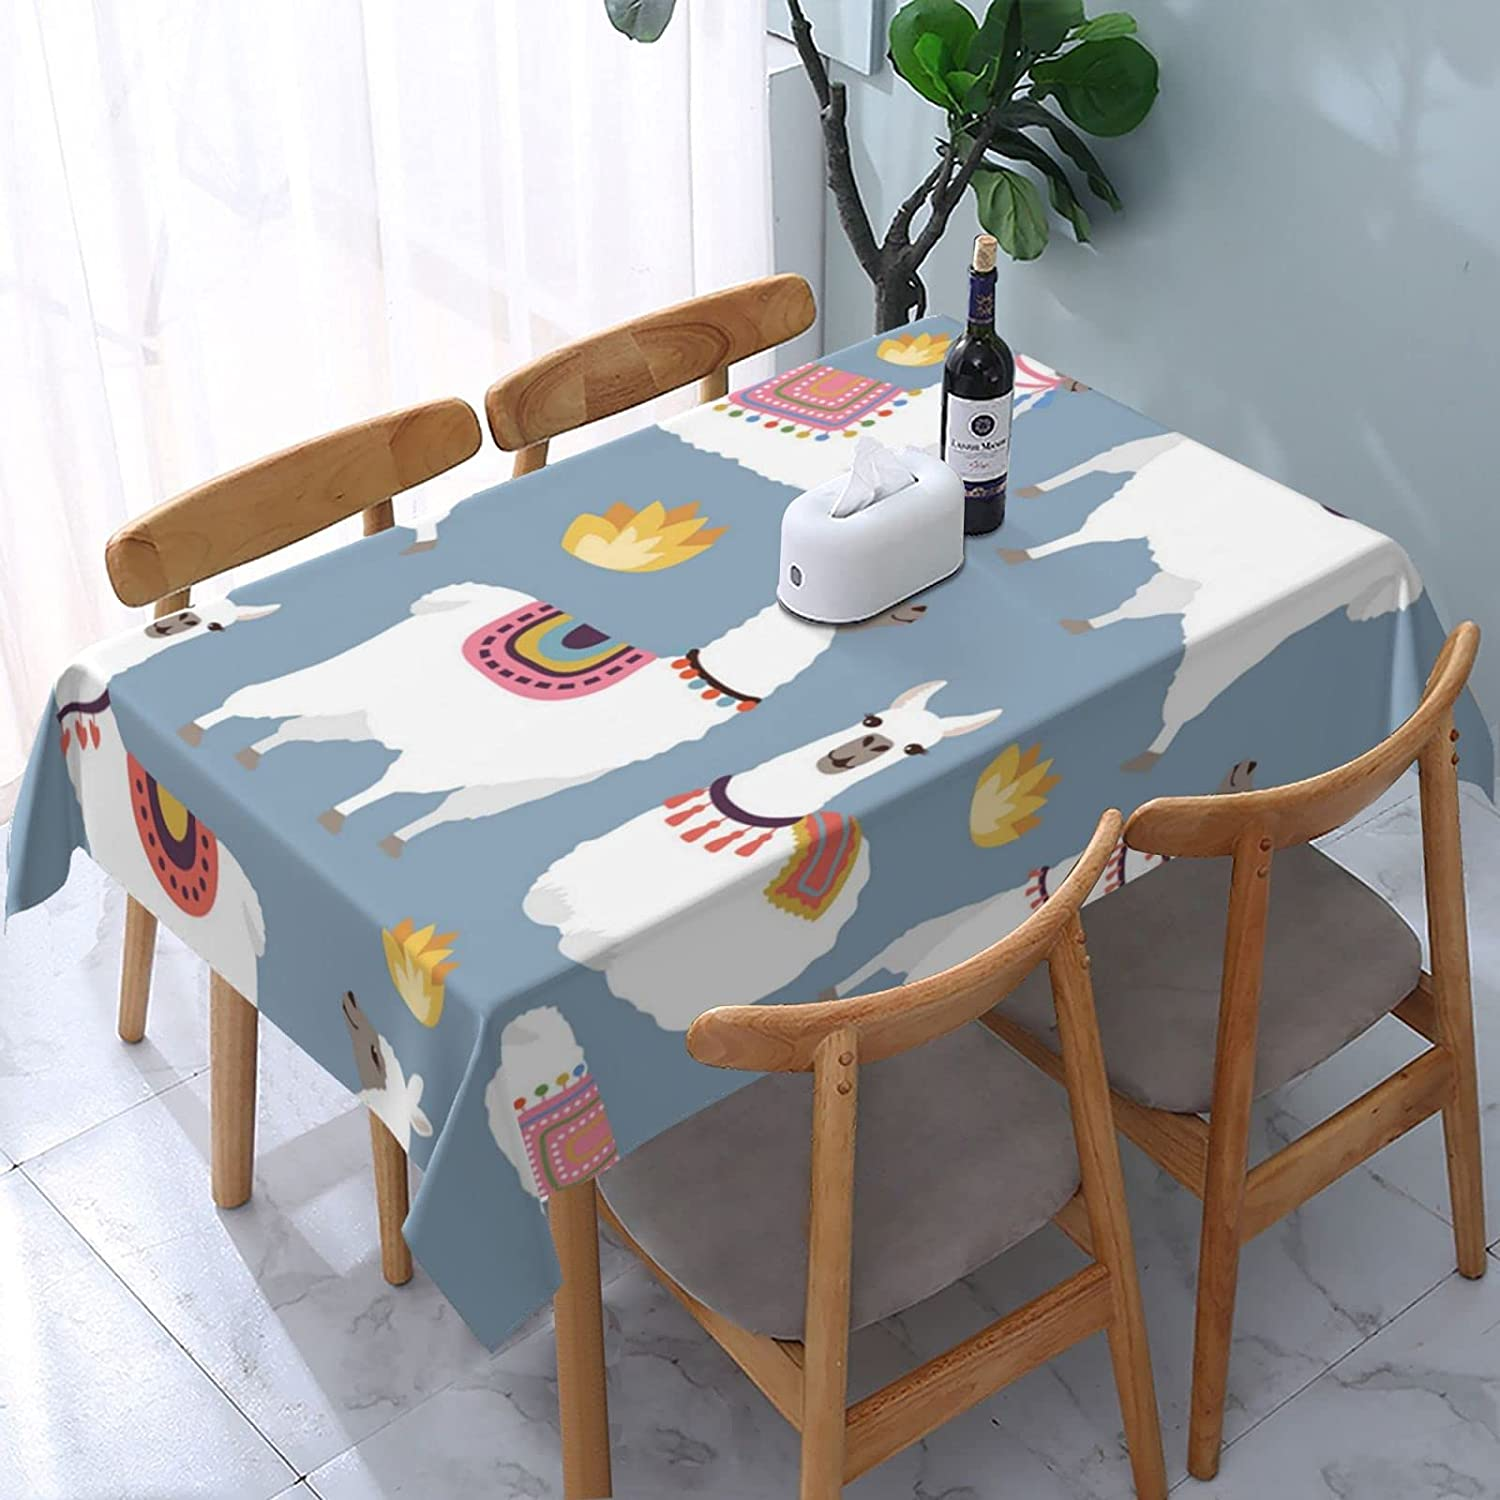 Colored Max 79% OFF Llama Ranking TOP4 Rectangle Tablecloth Washable with Cover Dus Table